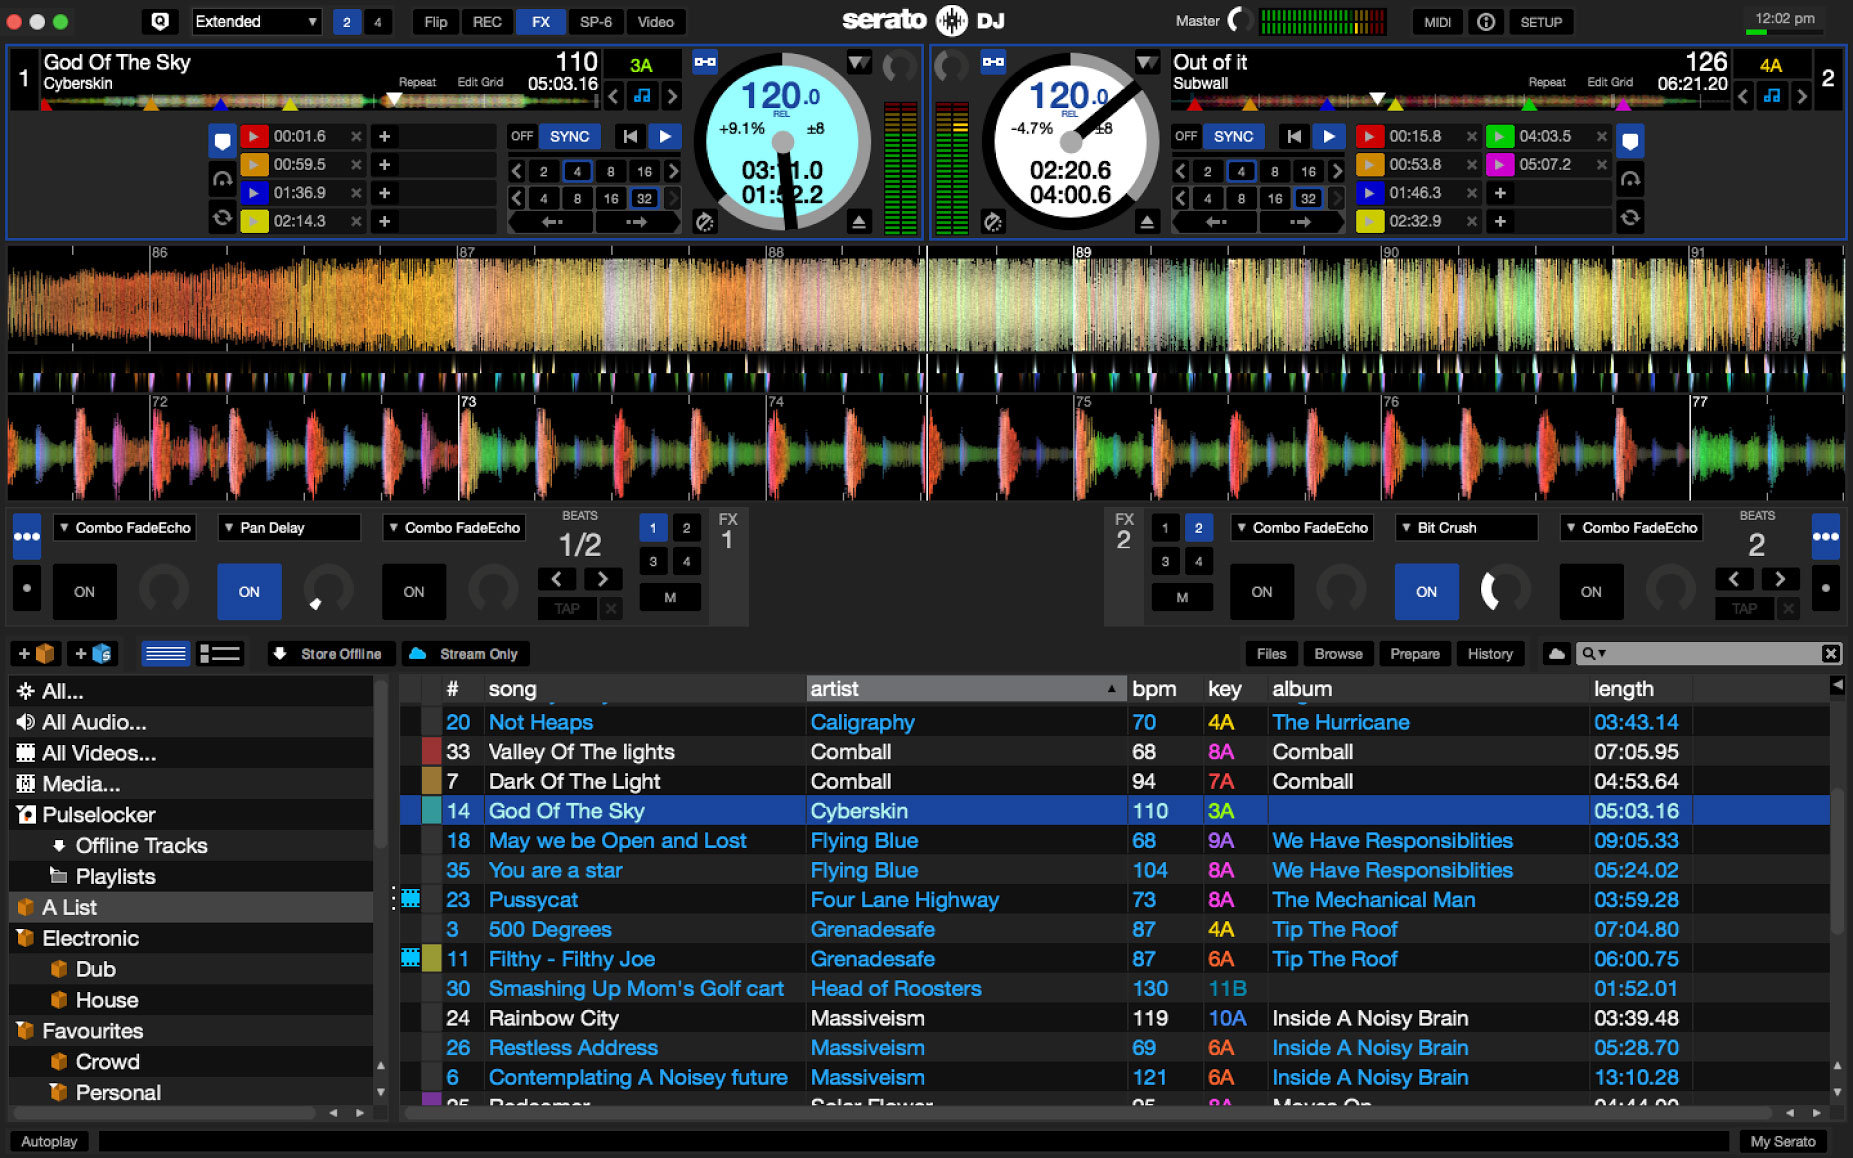 serato dj pro 2.0 full version free download